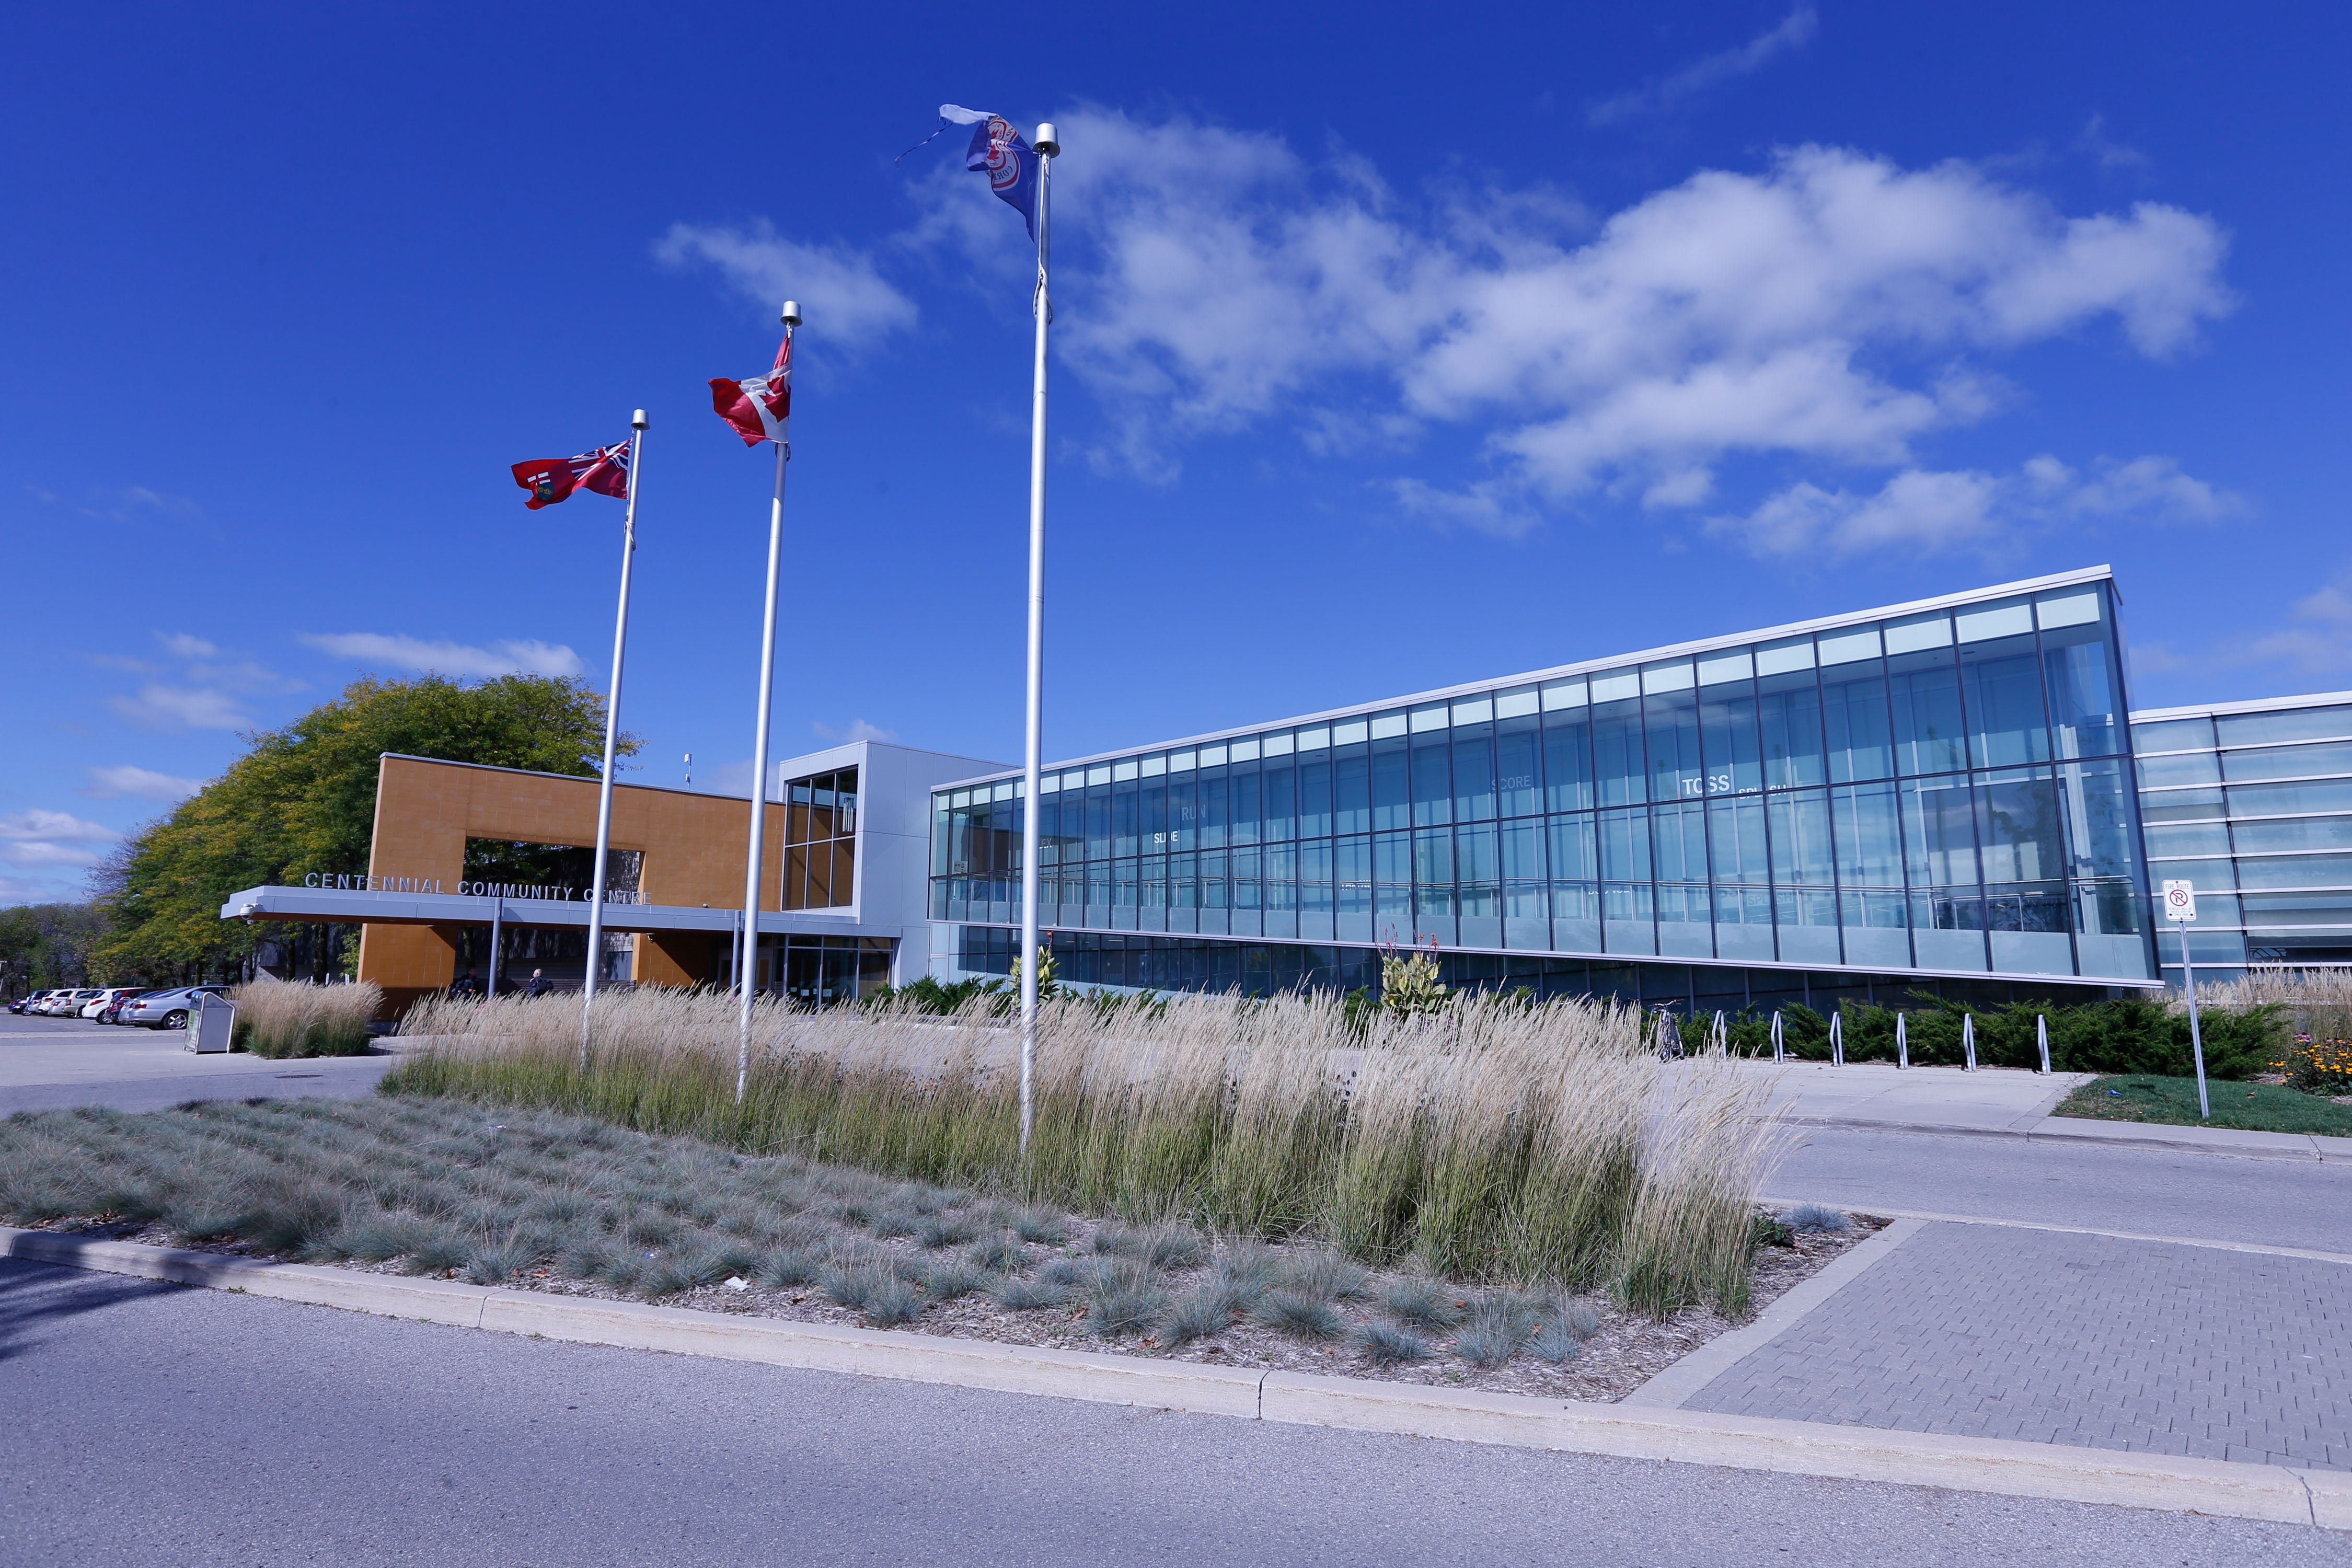 Centennial Community Centre